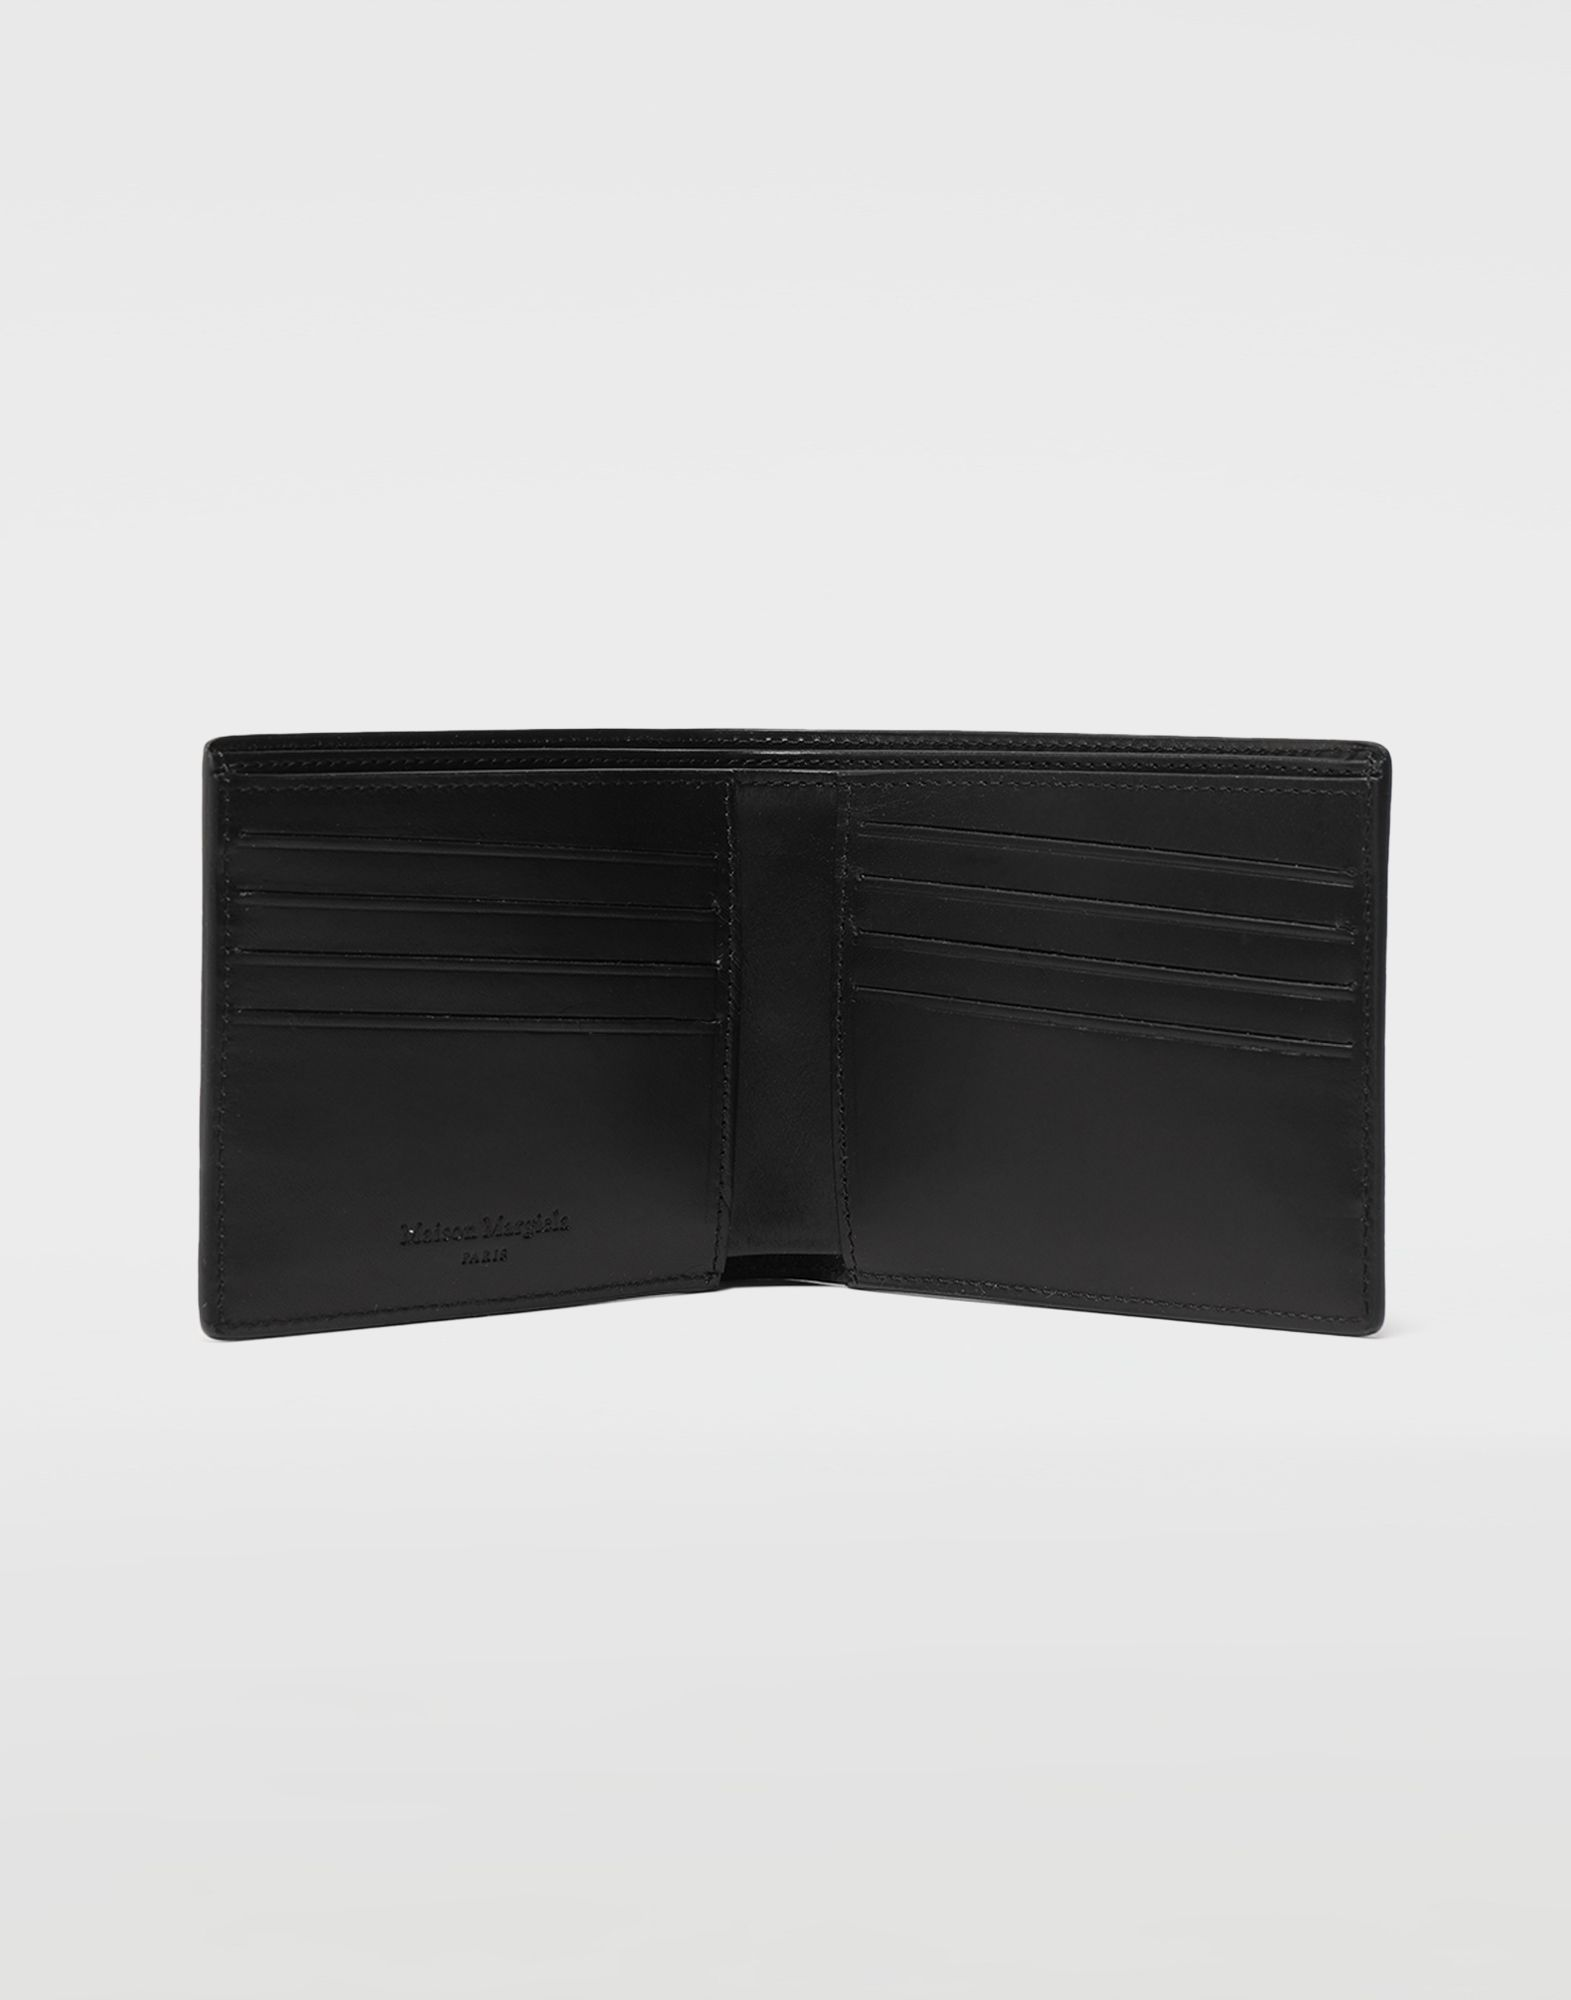 MAISON MARGIELA Embossed logo fold-out leather wallet Wallets Man e